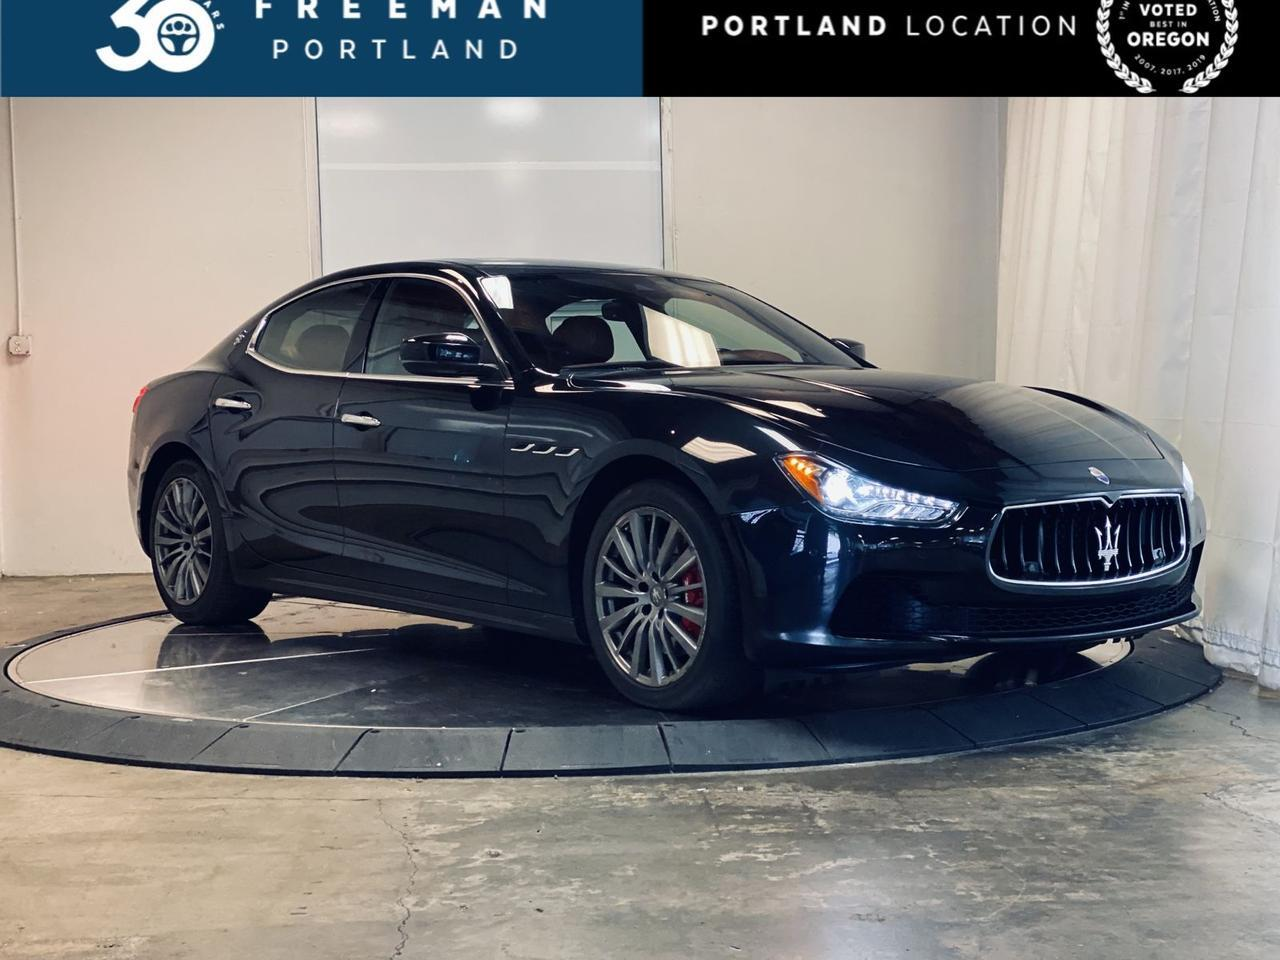 2017 Maserati Ghibli S Q4 Heated & Cooled Seats Red Interior Heated Steering Wheel Portland OR